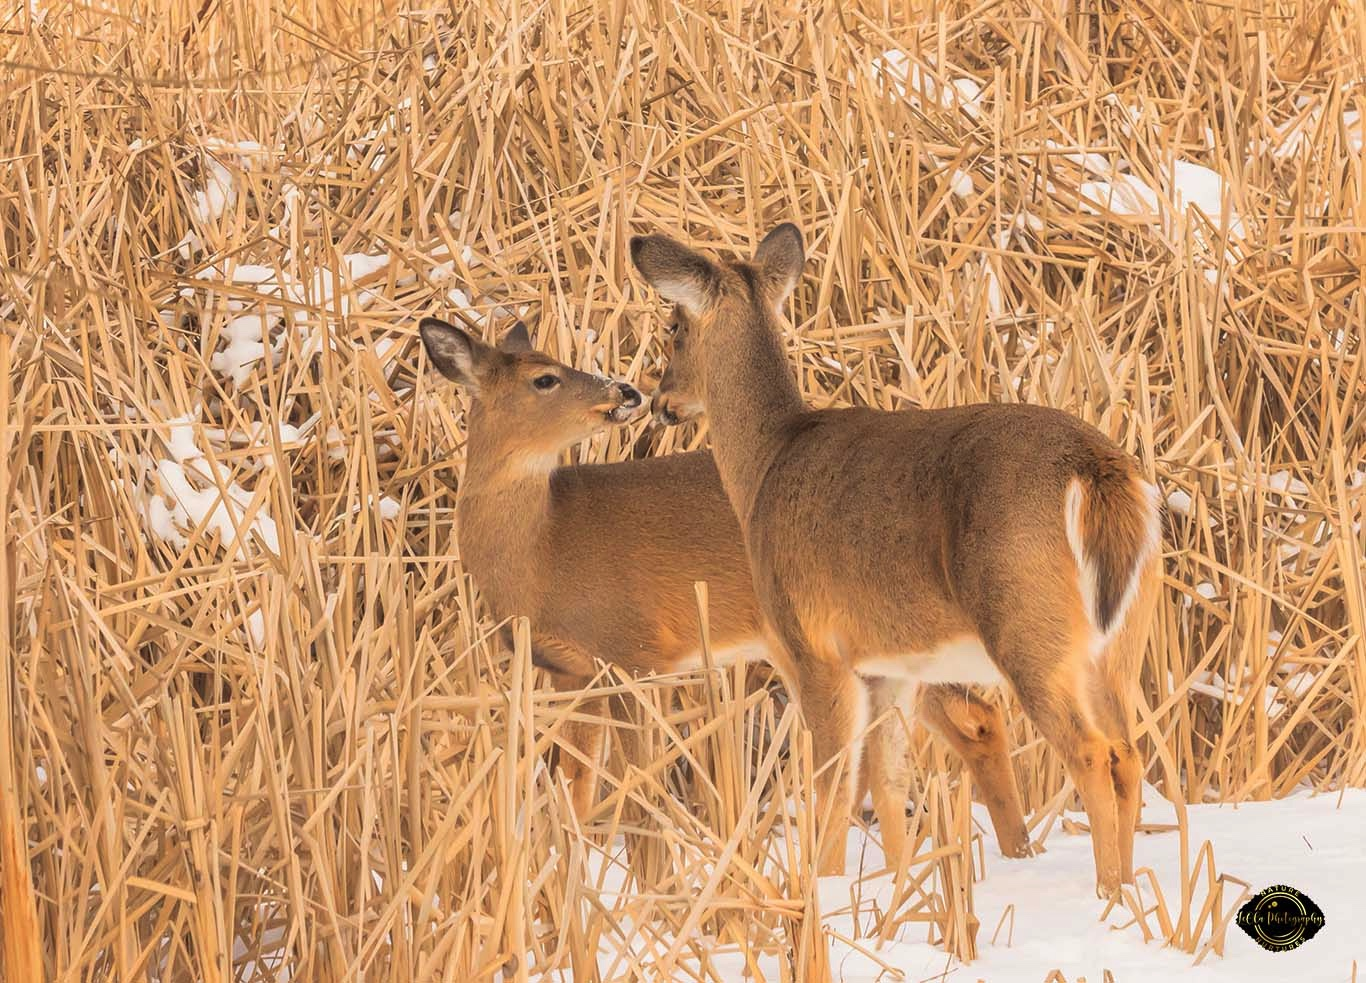 Fawn kisses doe as they share a peaceful moment